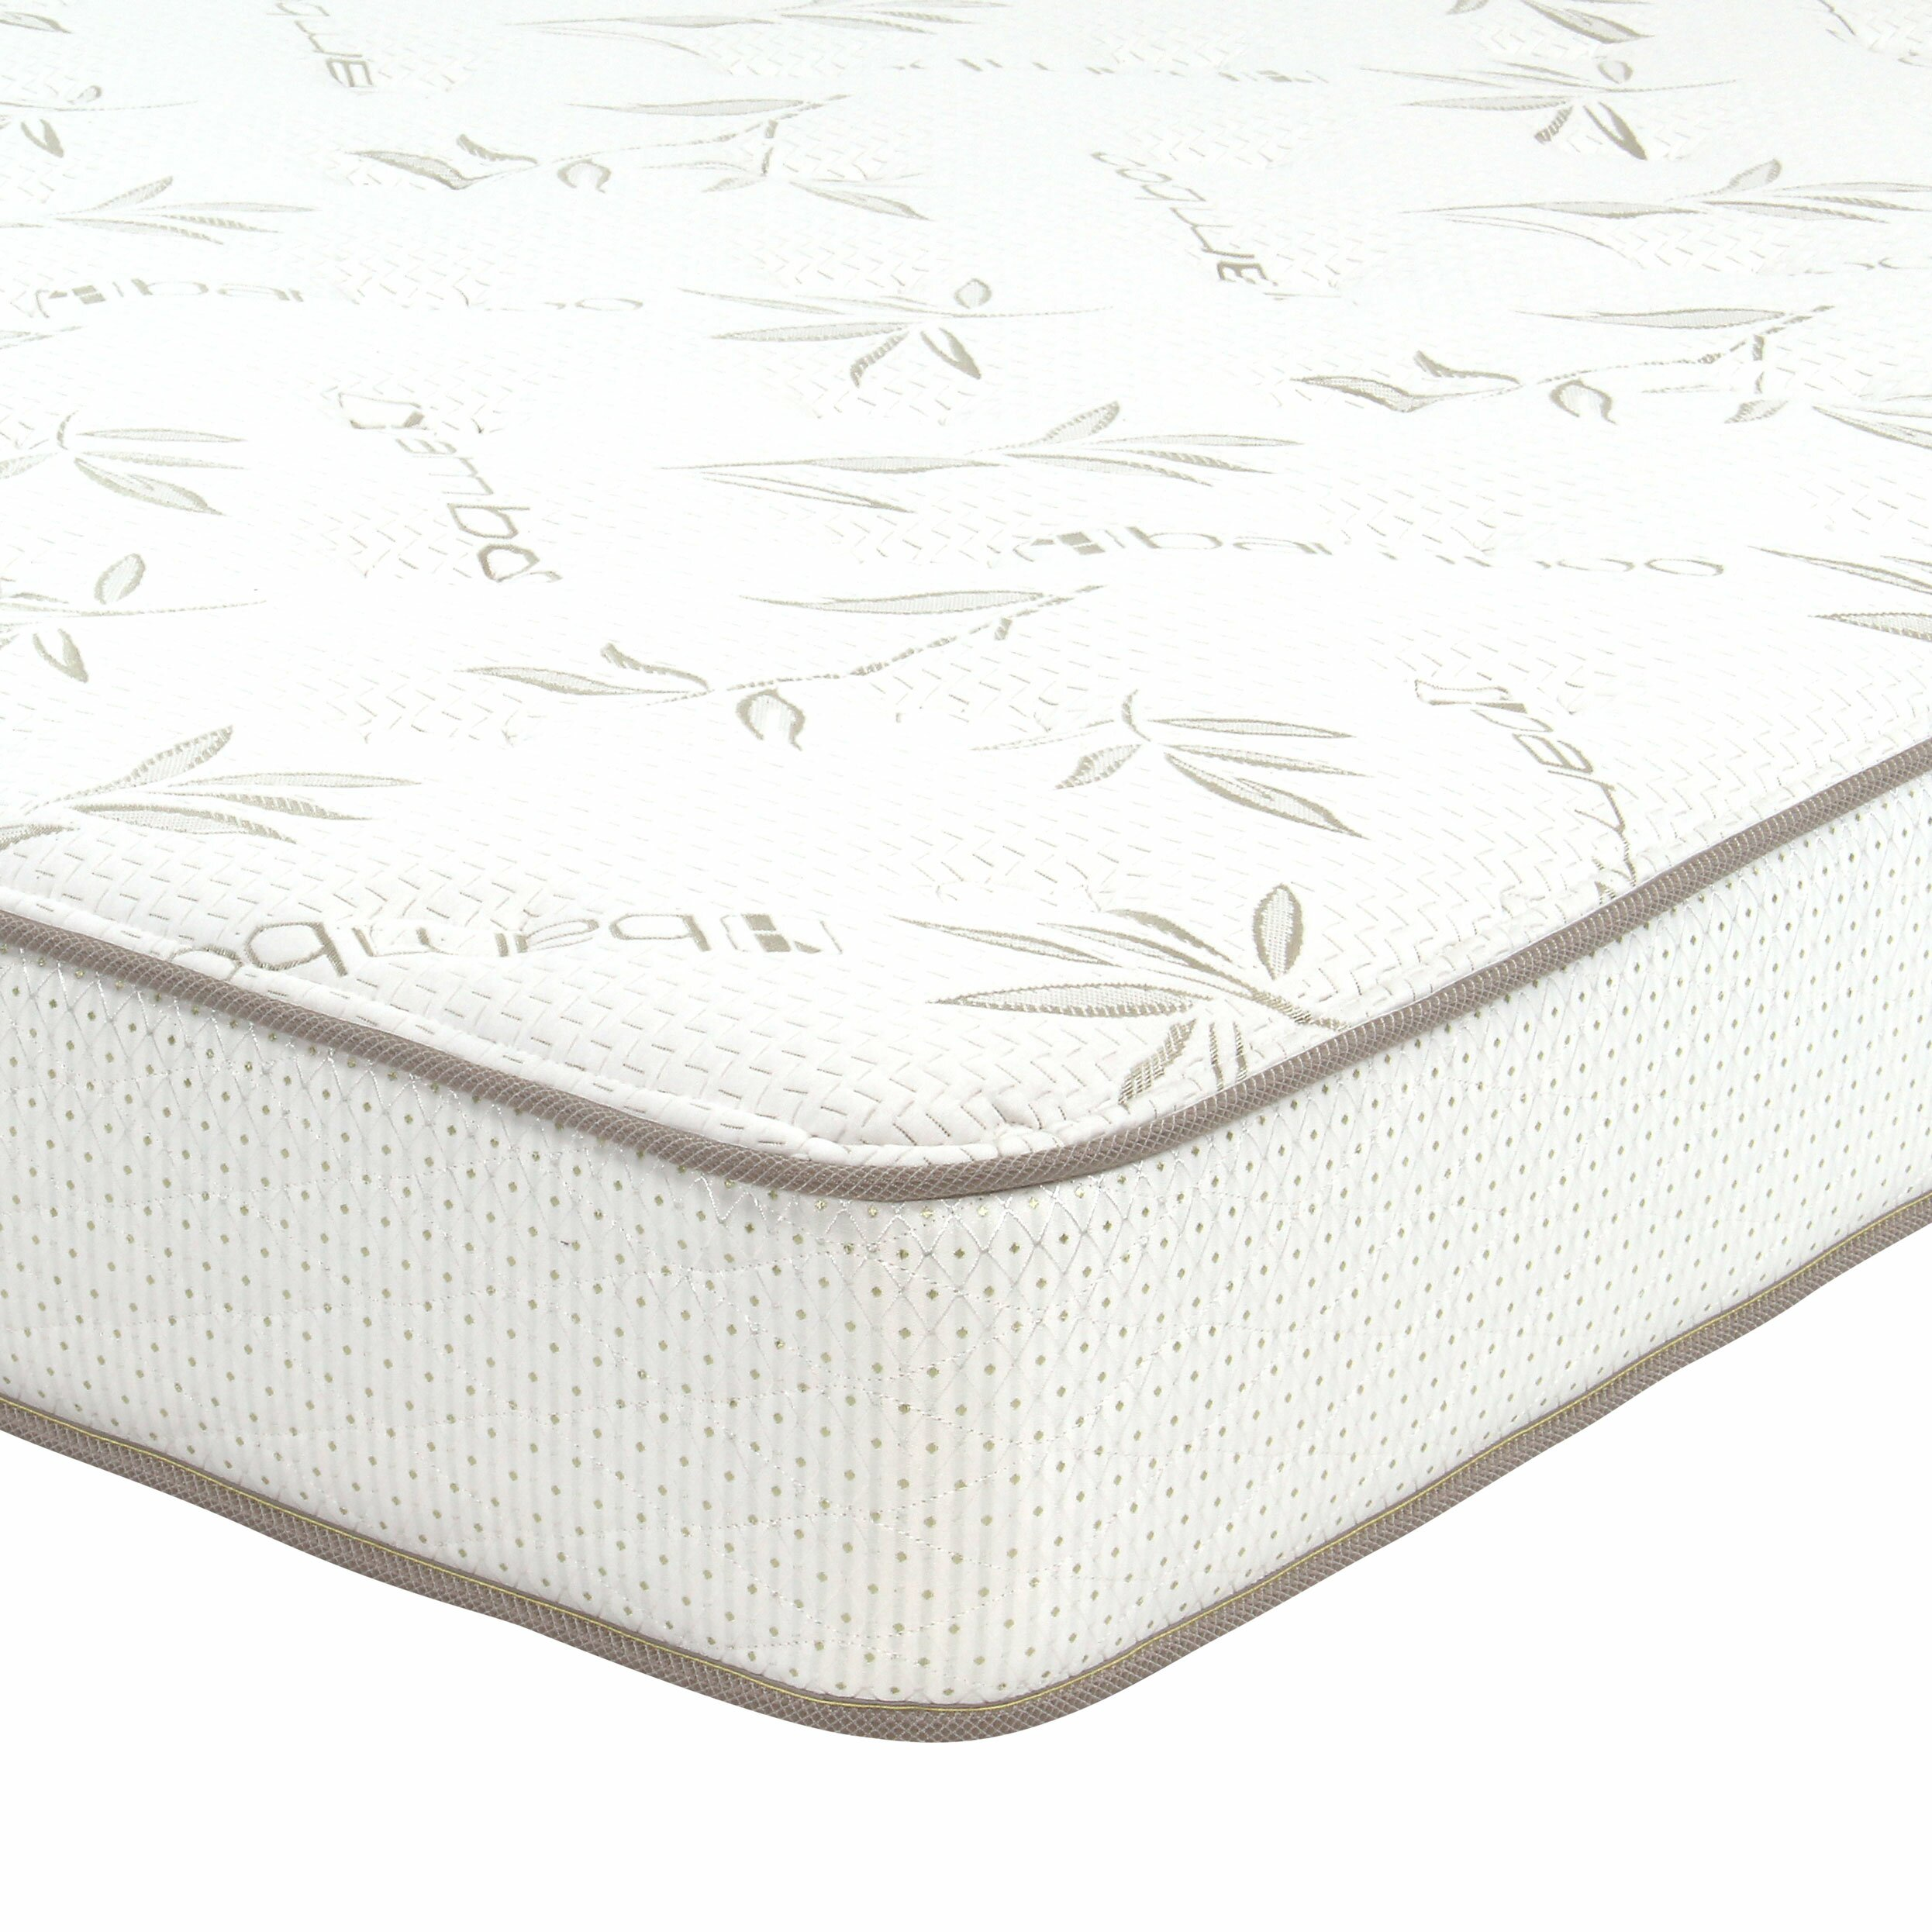 Brooklyn bedding ultimate dreams 10quot latex mattress for Brooklyn bedding ultimate dreams